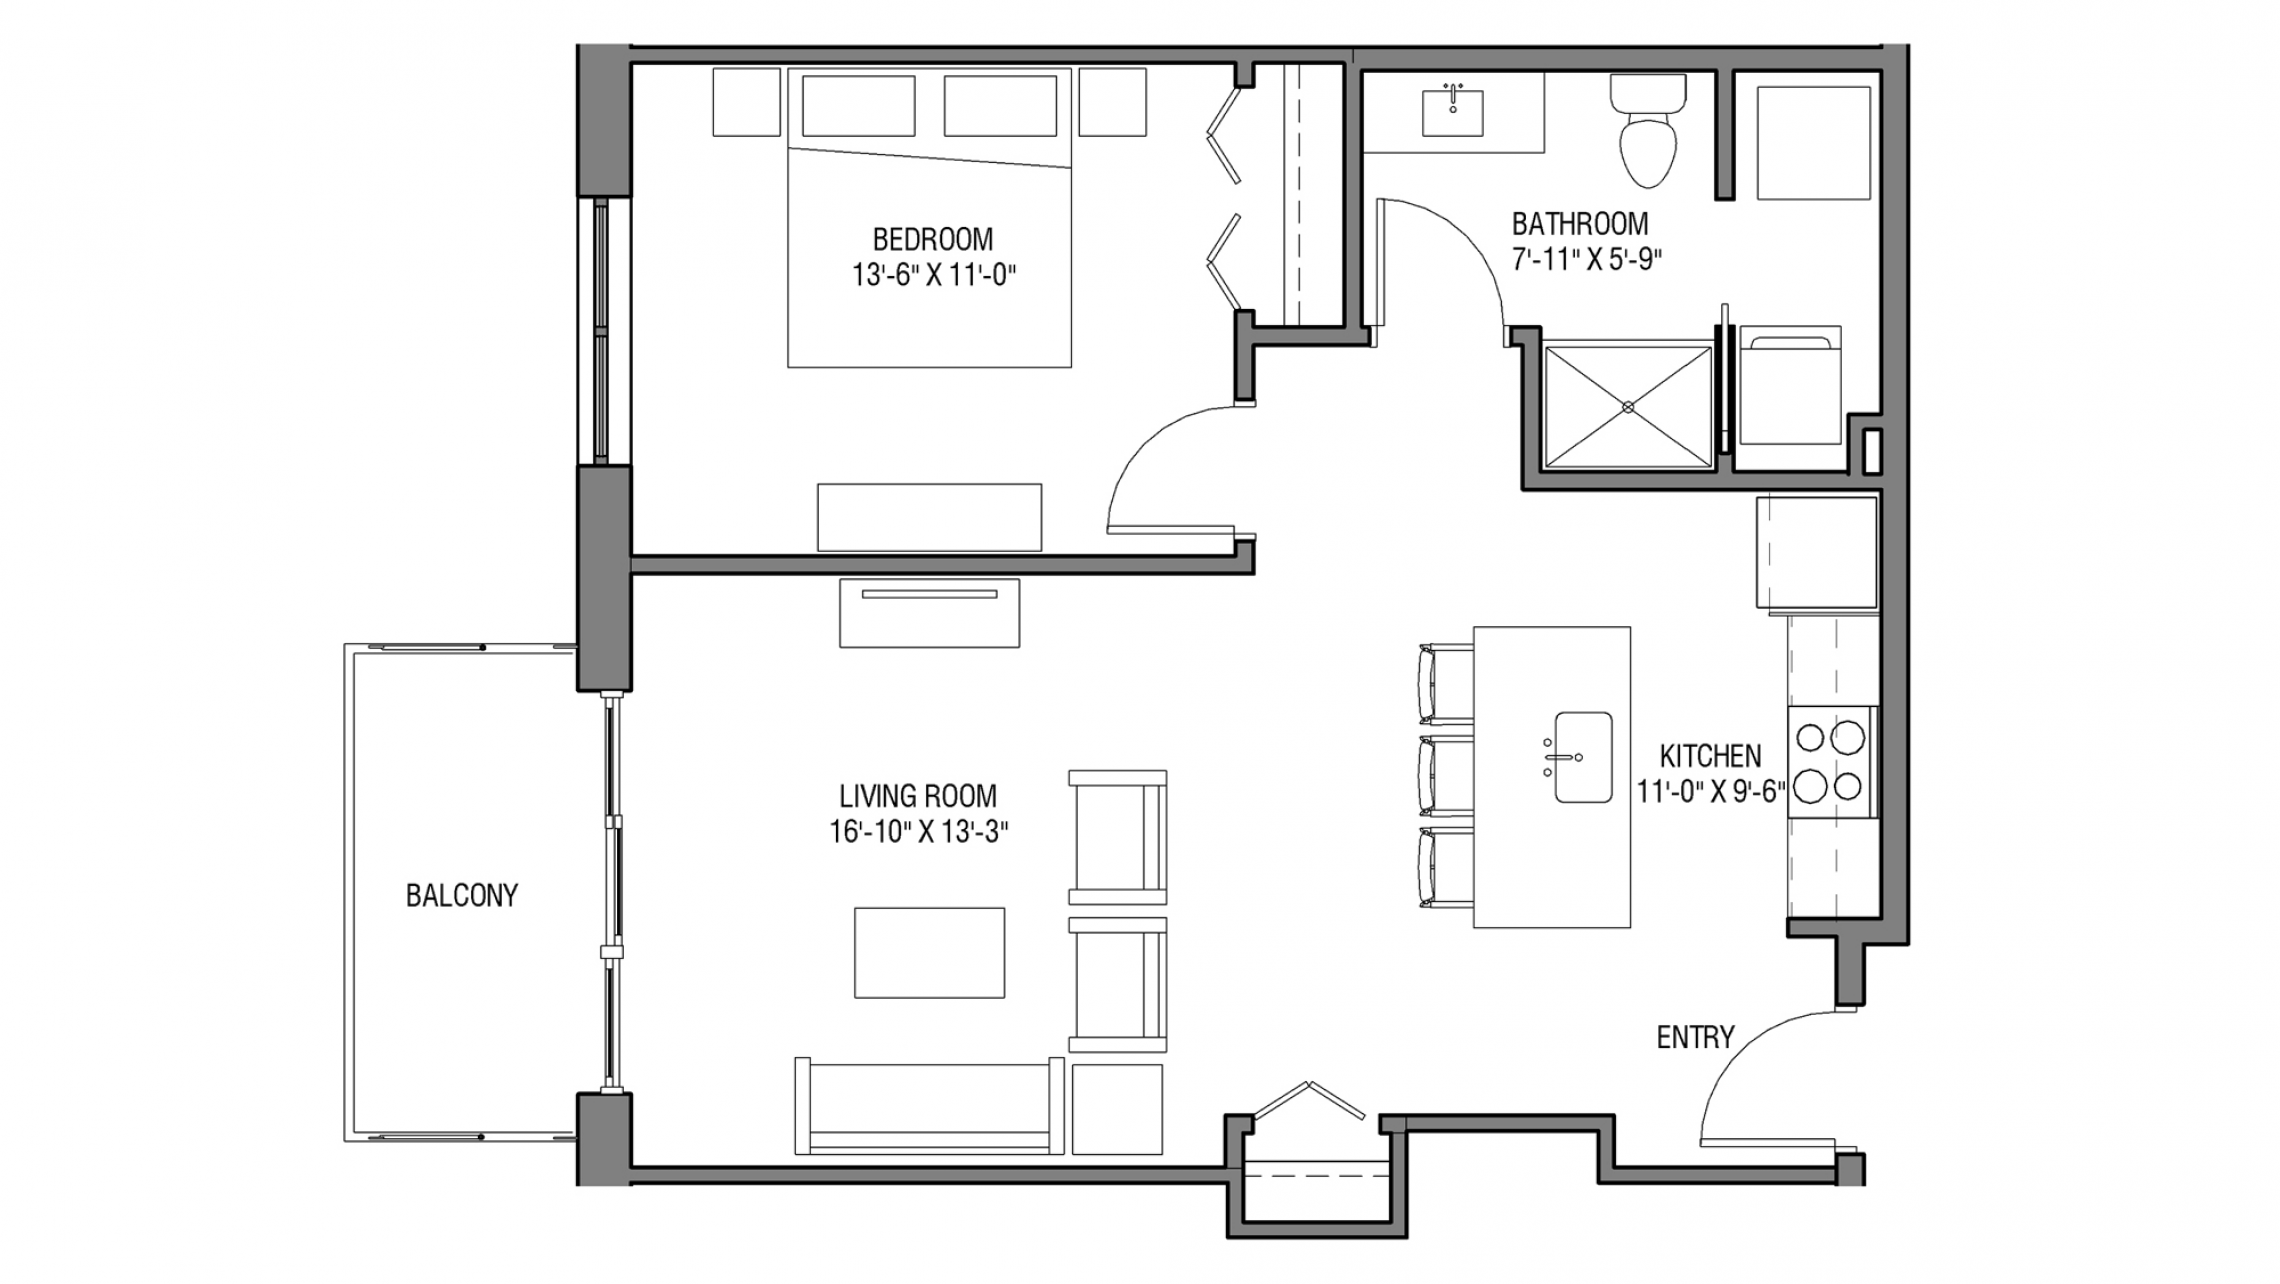 ULI Nine Line 316 - One Bedroom, One Bathroom